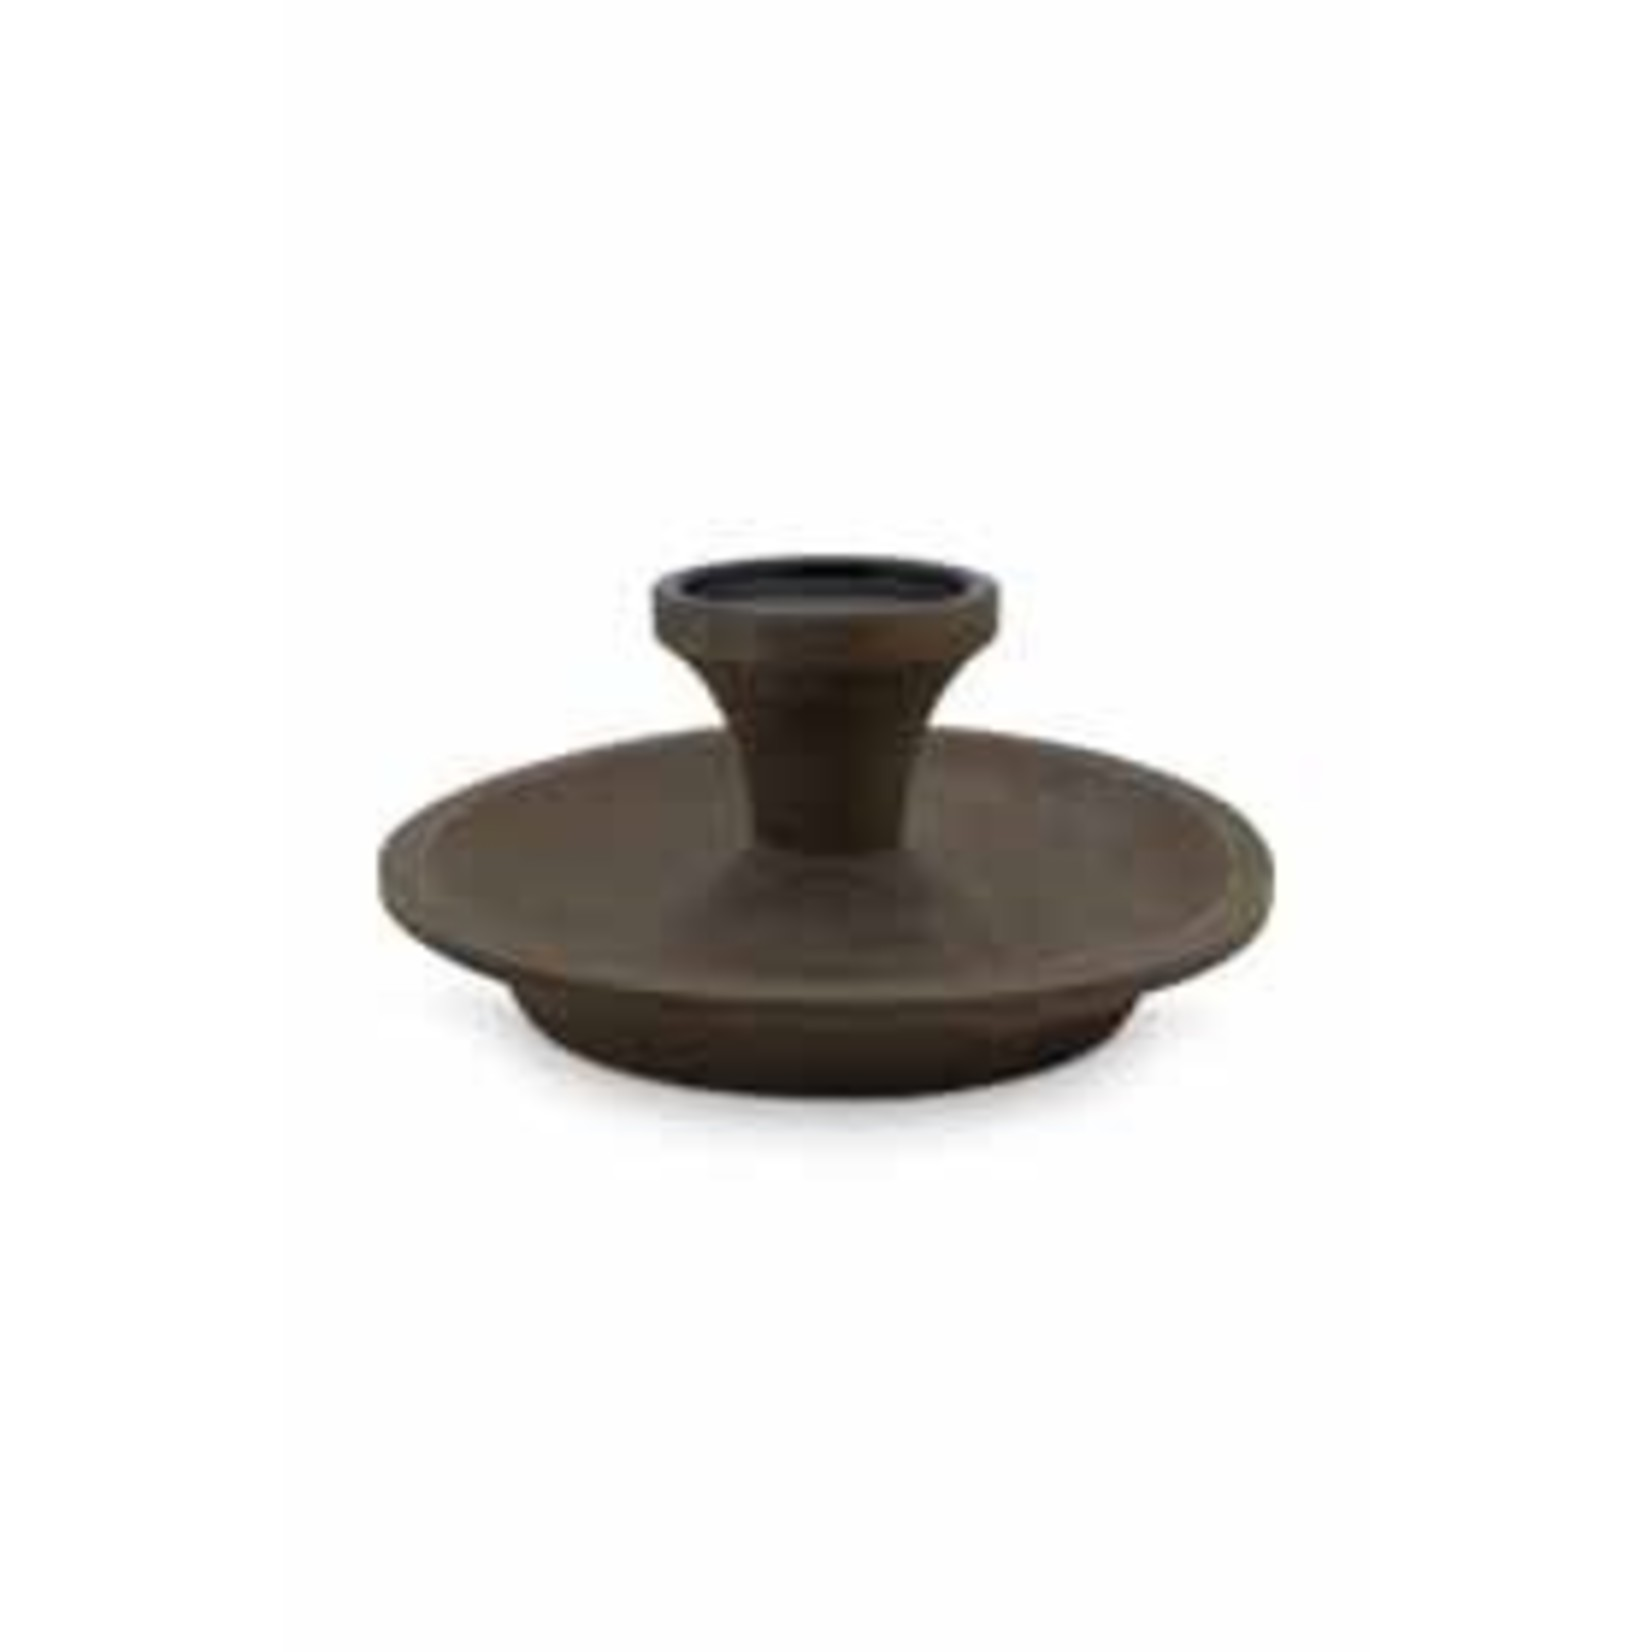 vtwonen Candle Holder Round Brown with Black Cup 23cm